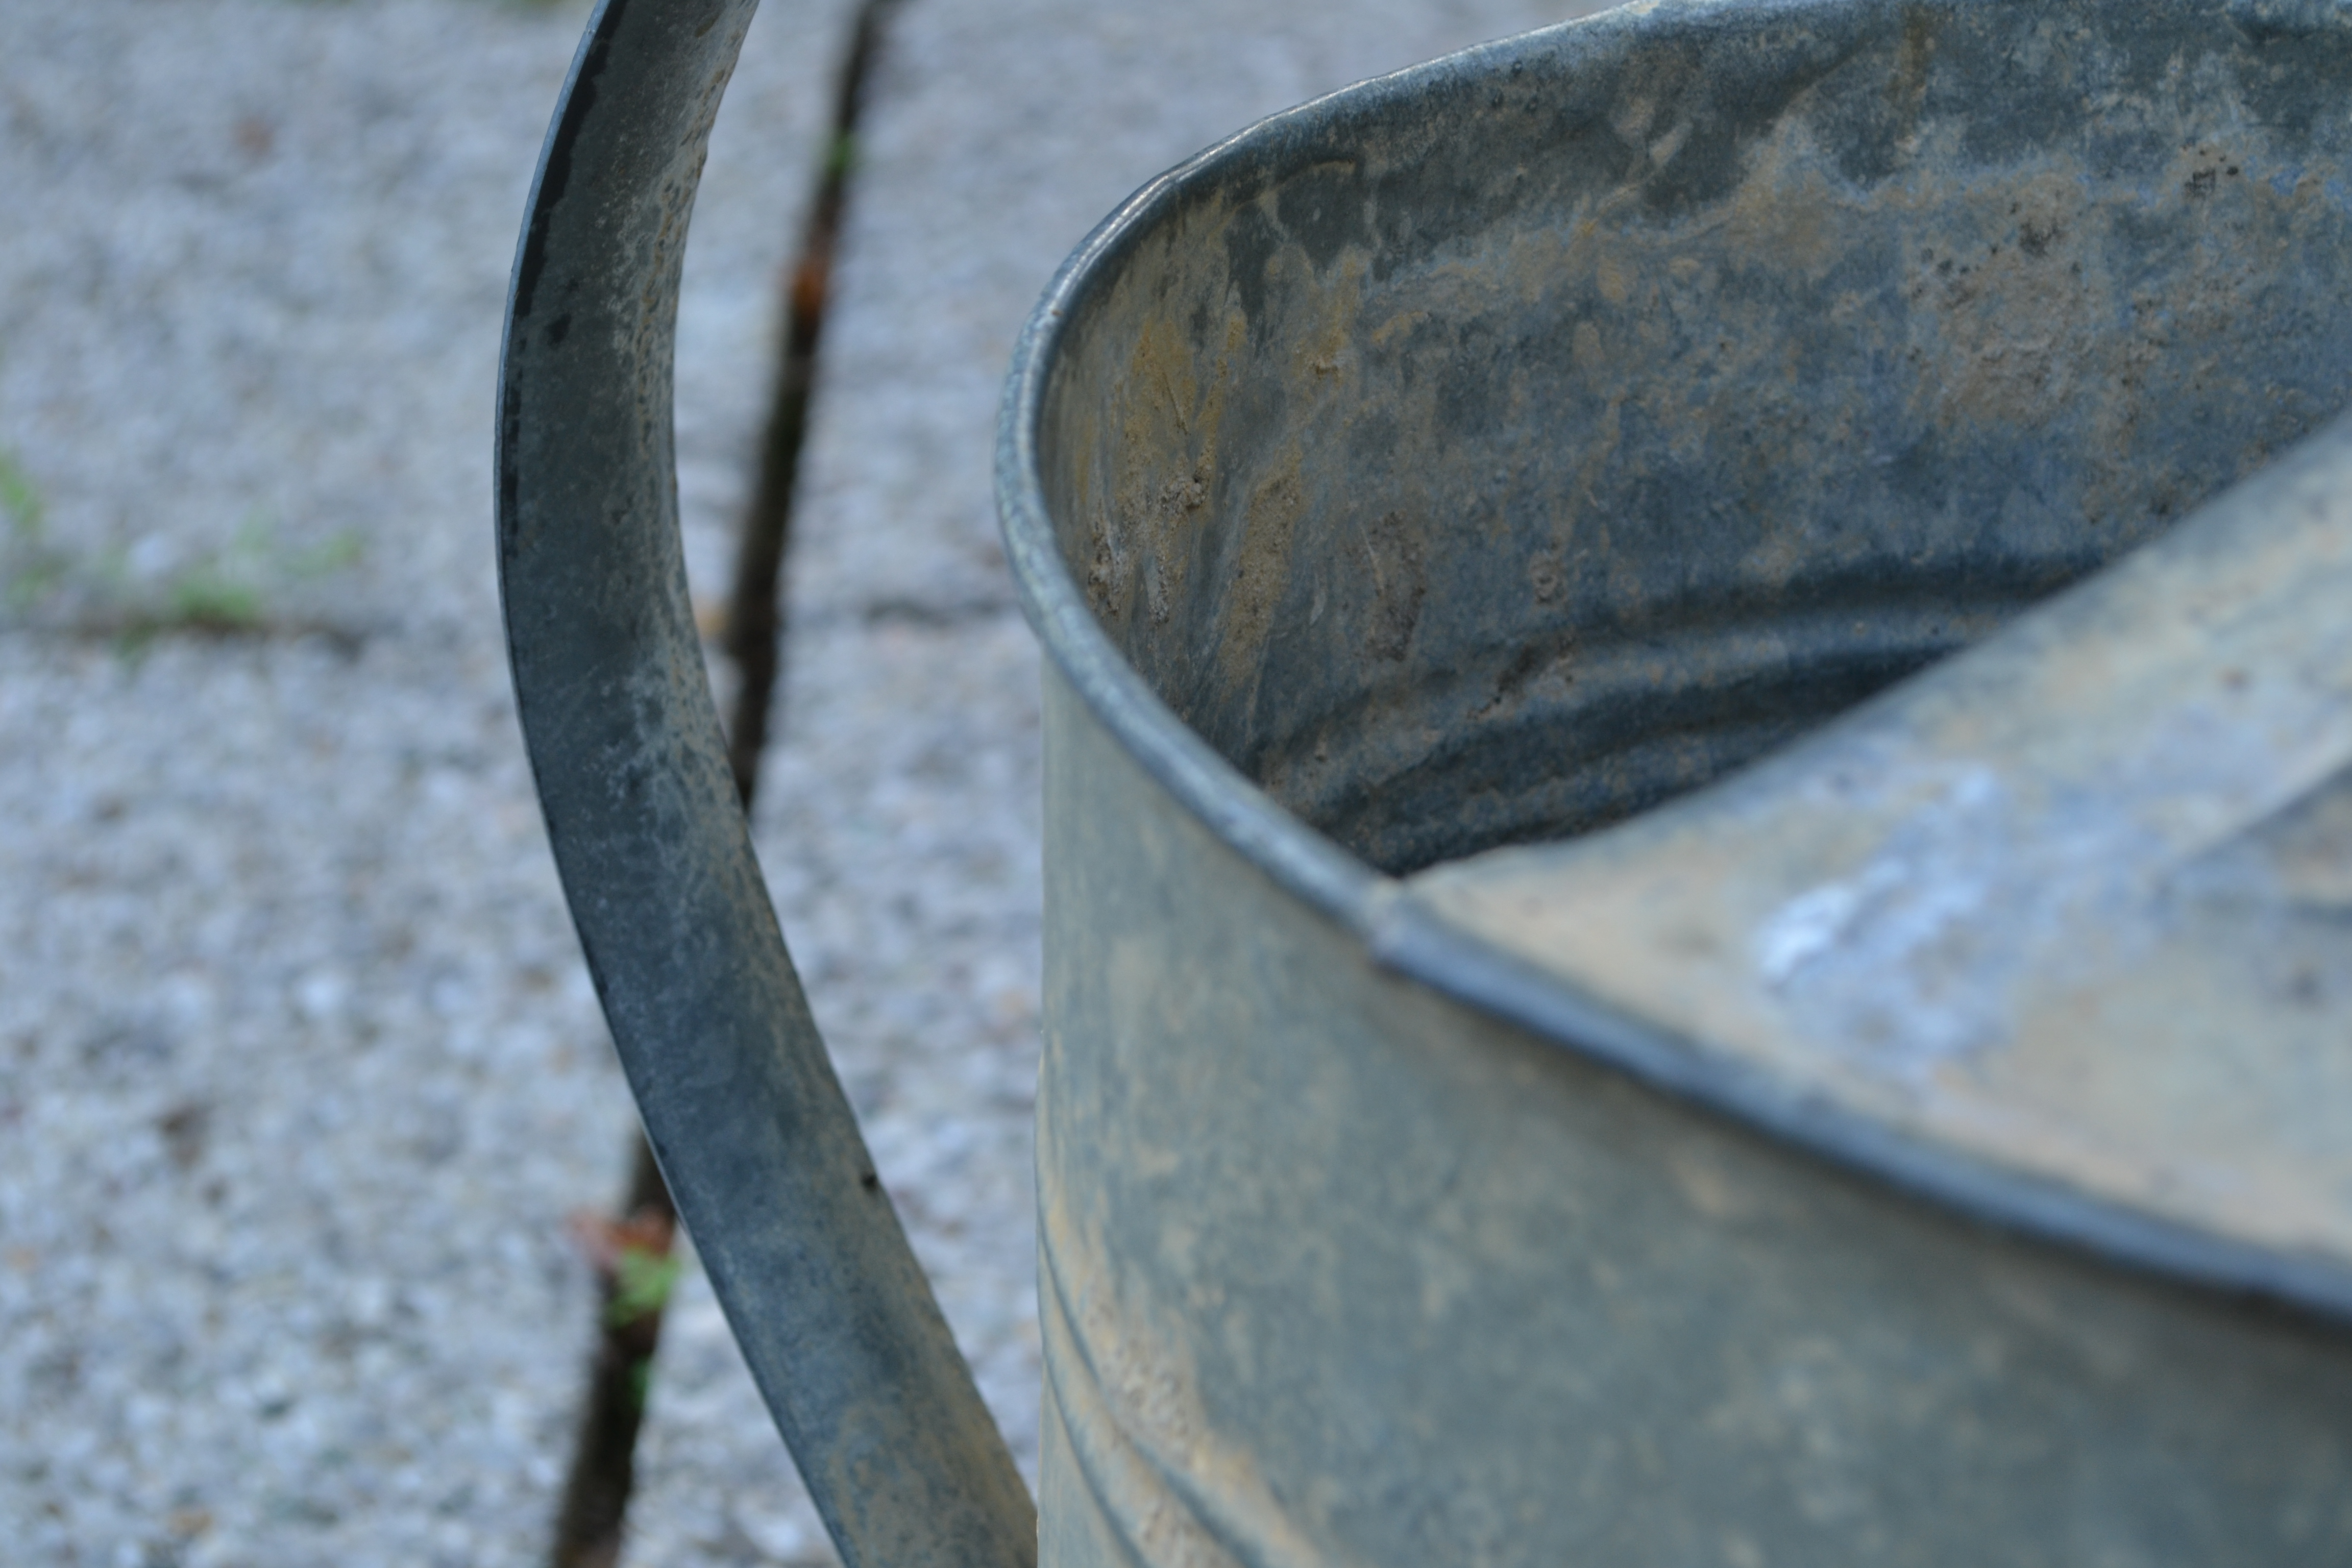 Watering can detail photo